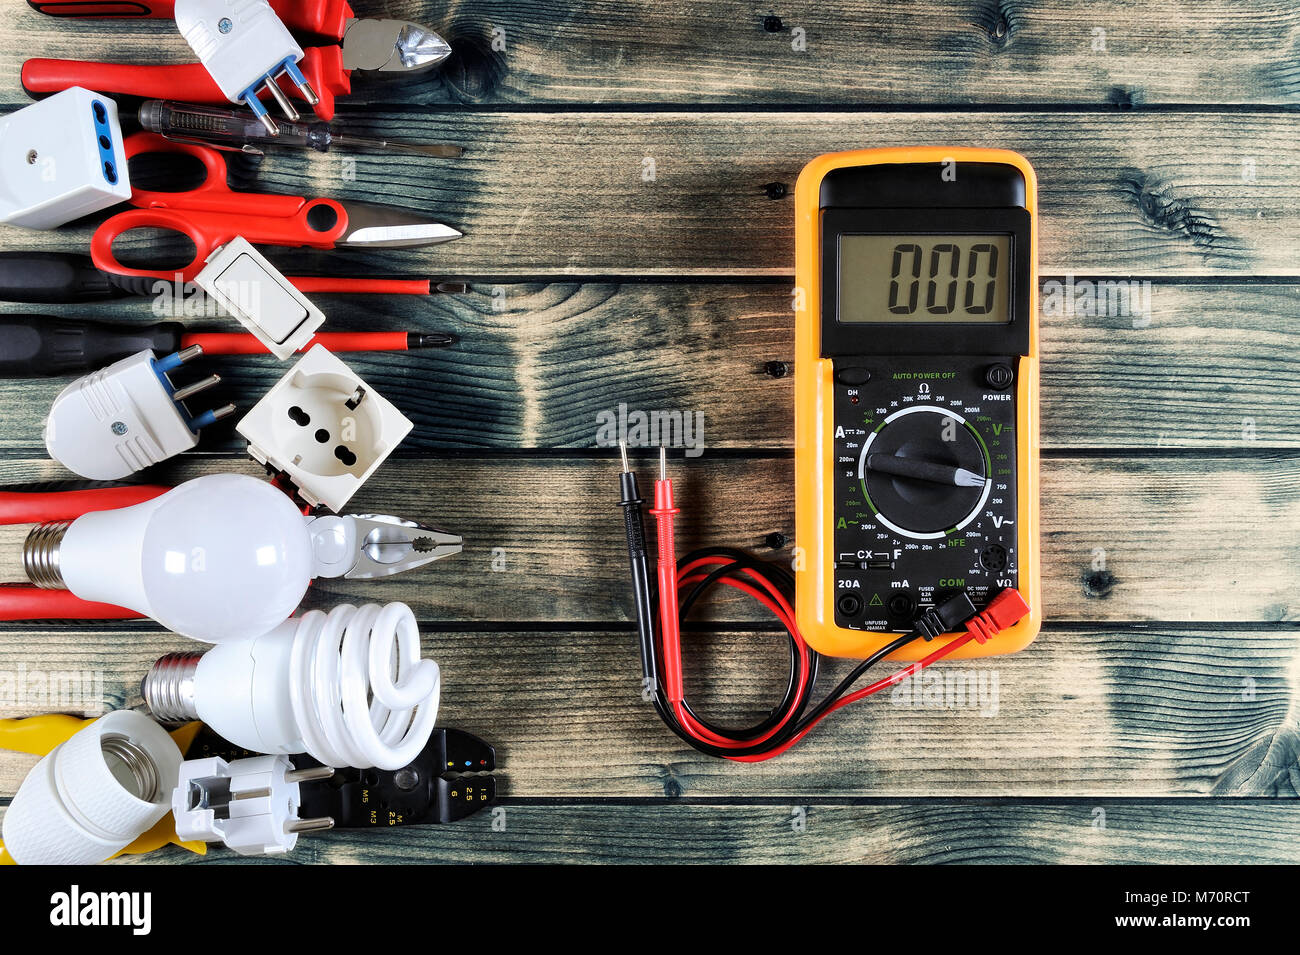 Close-up of work tools and electrical equipment on an antique wooden table with space for text / announcement Stock Photo